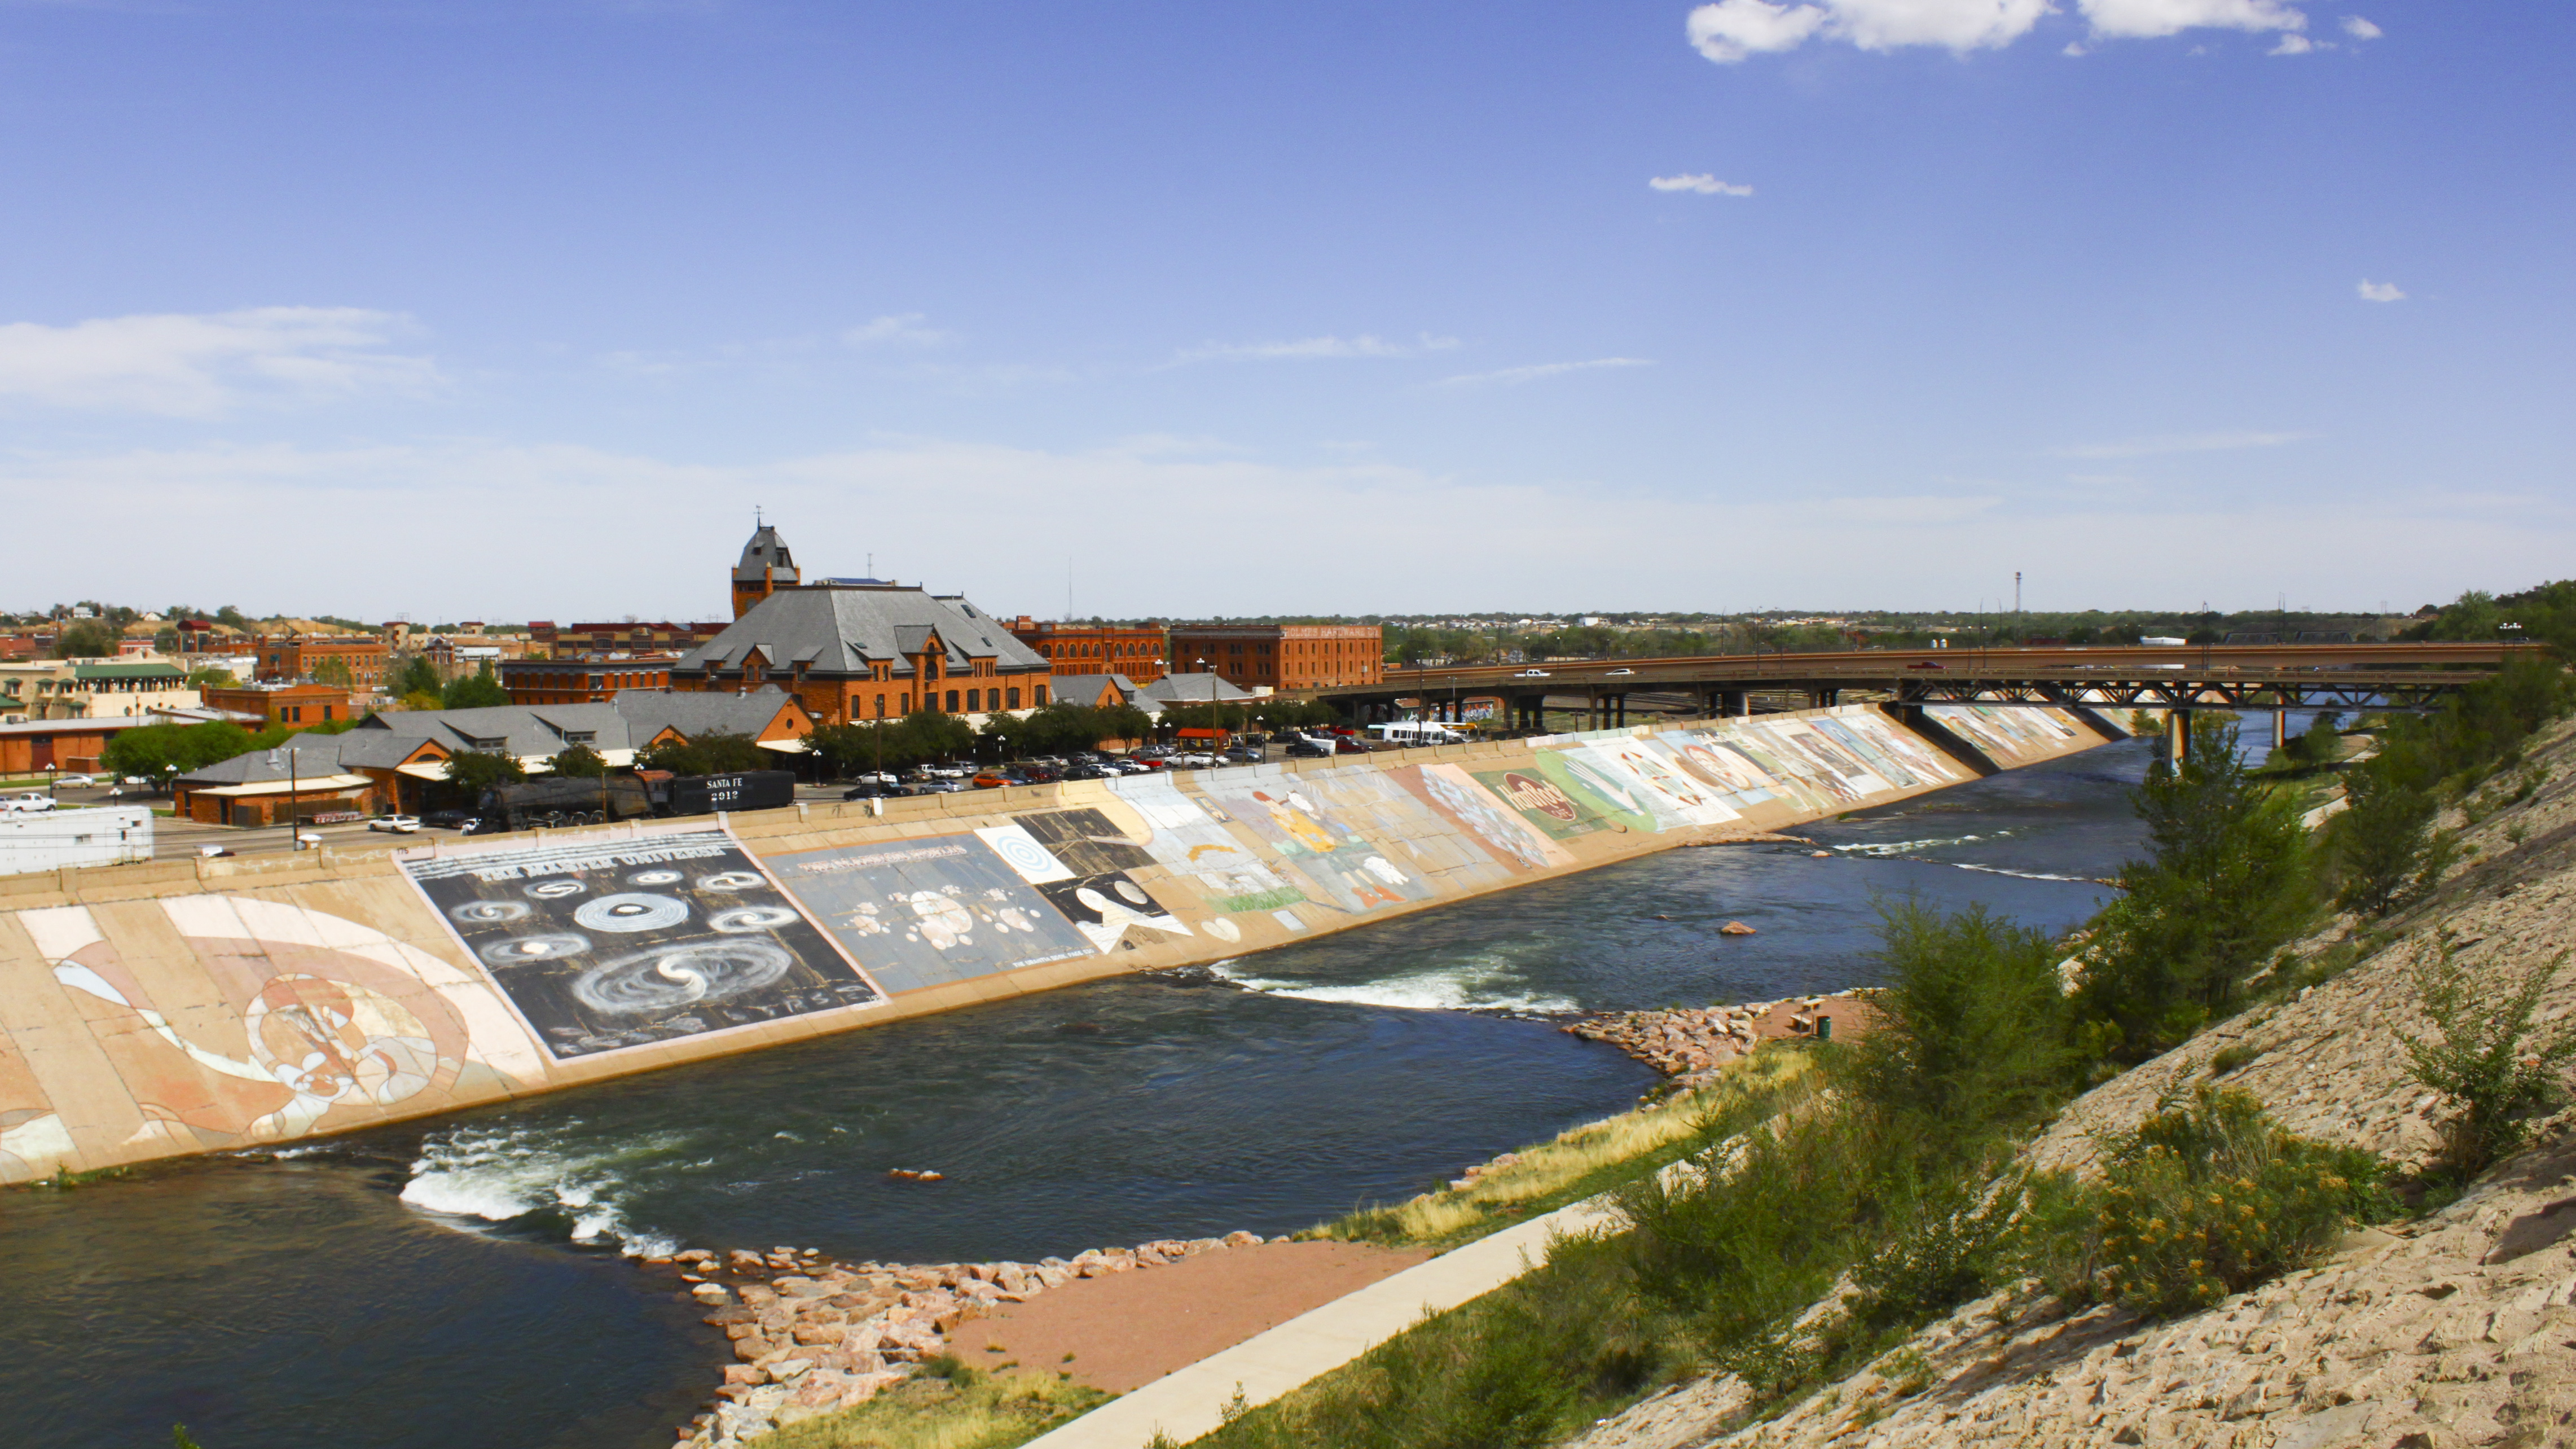 """<p>This nearly 3-mile-long mural on a levee in Pueblois in the Guinness Book of World Records for being the world's largest continuous painting. (Photo: <a href=""""https://www.flickr.com/photos/jvalasimages/14119462816/"""" target=""""_blank"""" rel=""""noopener noreferrer"""">Courtesy Justin Valas </a>/ <a href=""""https://creativecommons.org/licenses/by-nc-nd/2.0/"""" target=""""_blank"""" rel=""""noopener noreferrer"""">via Creative Commons</a>)</p>"""